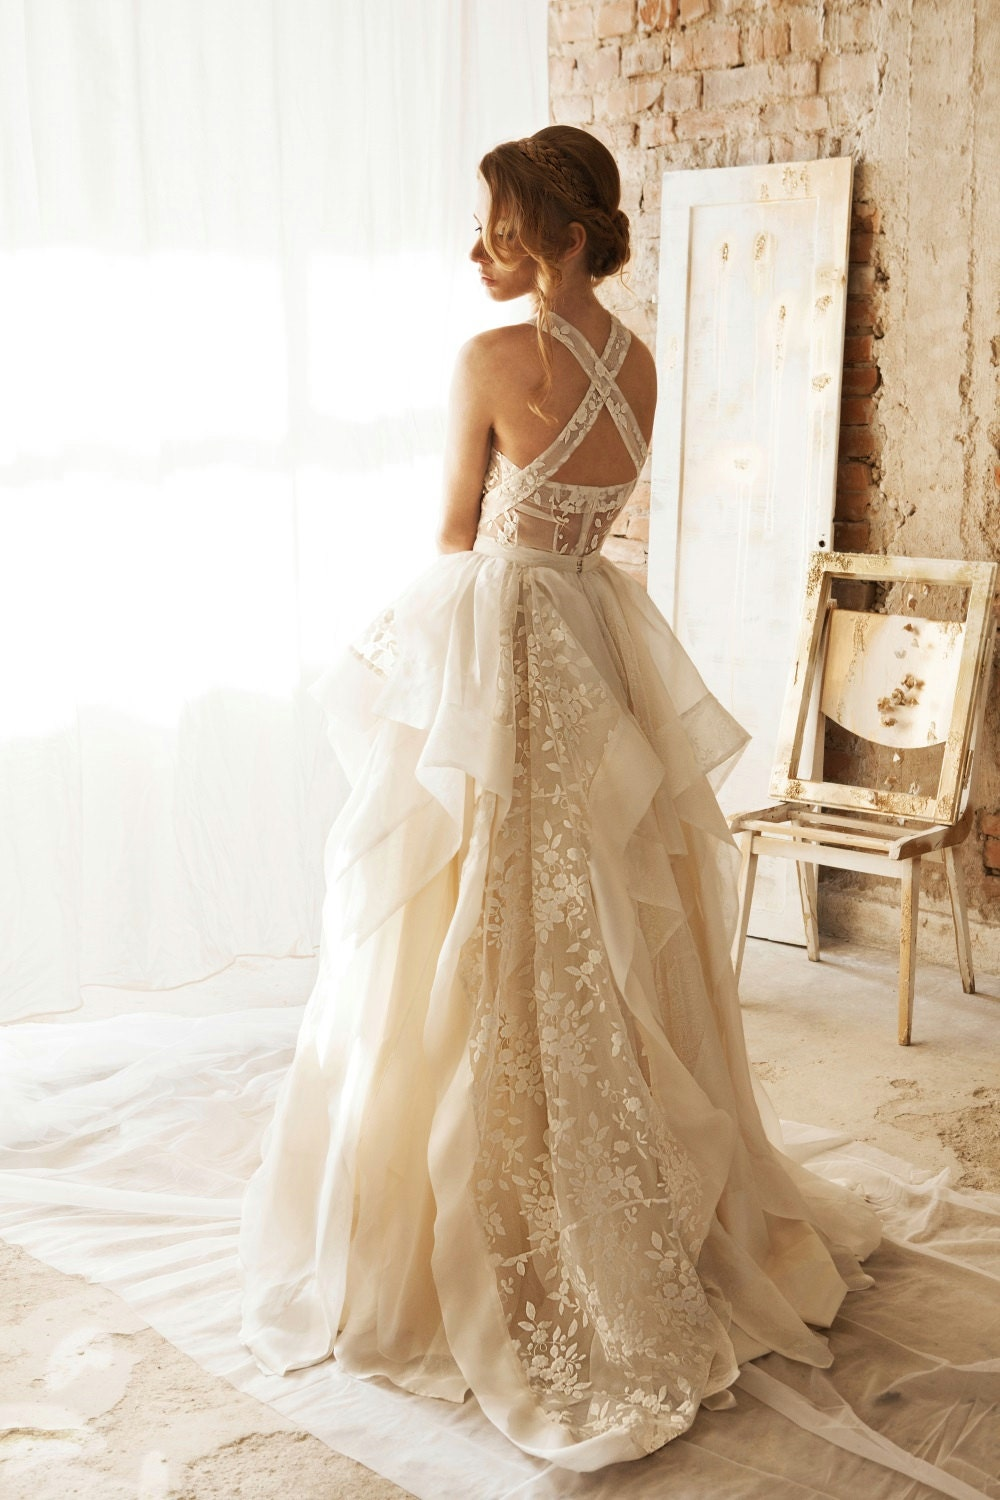 Wedding Separates Wedding Dress Rustic Wedding Dresses - photo#18